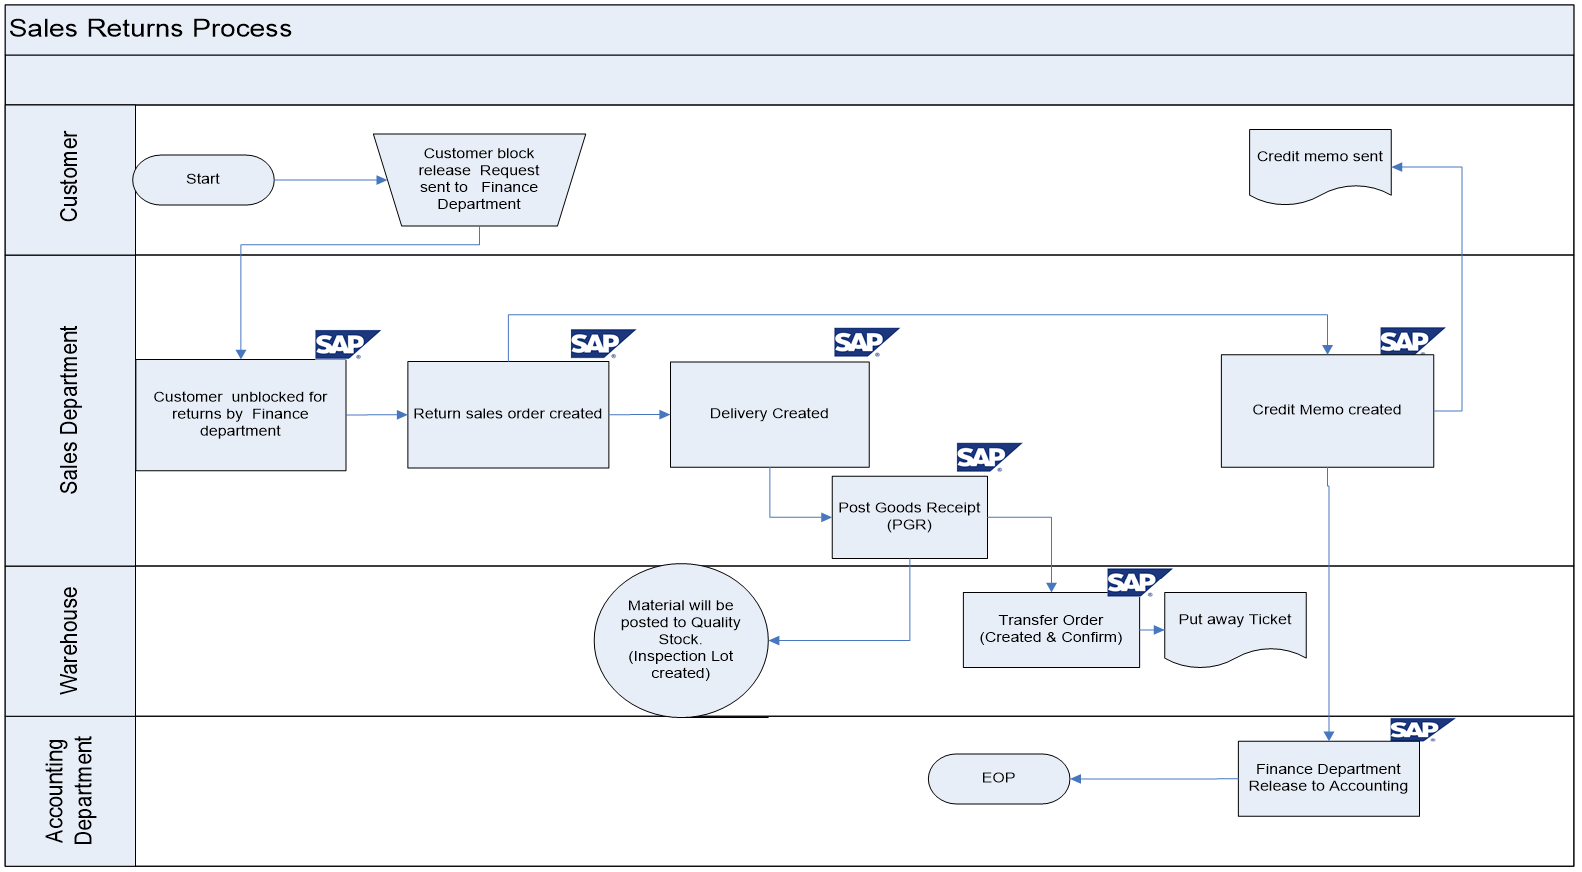 Sap sd business blueprint export sales return process scenario with export sales return process flow diagram in sap sd malvernweather Images